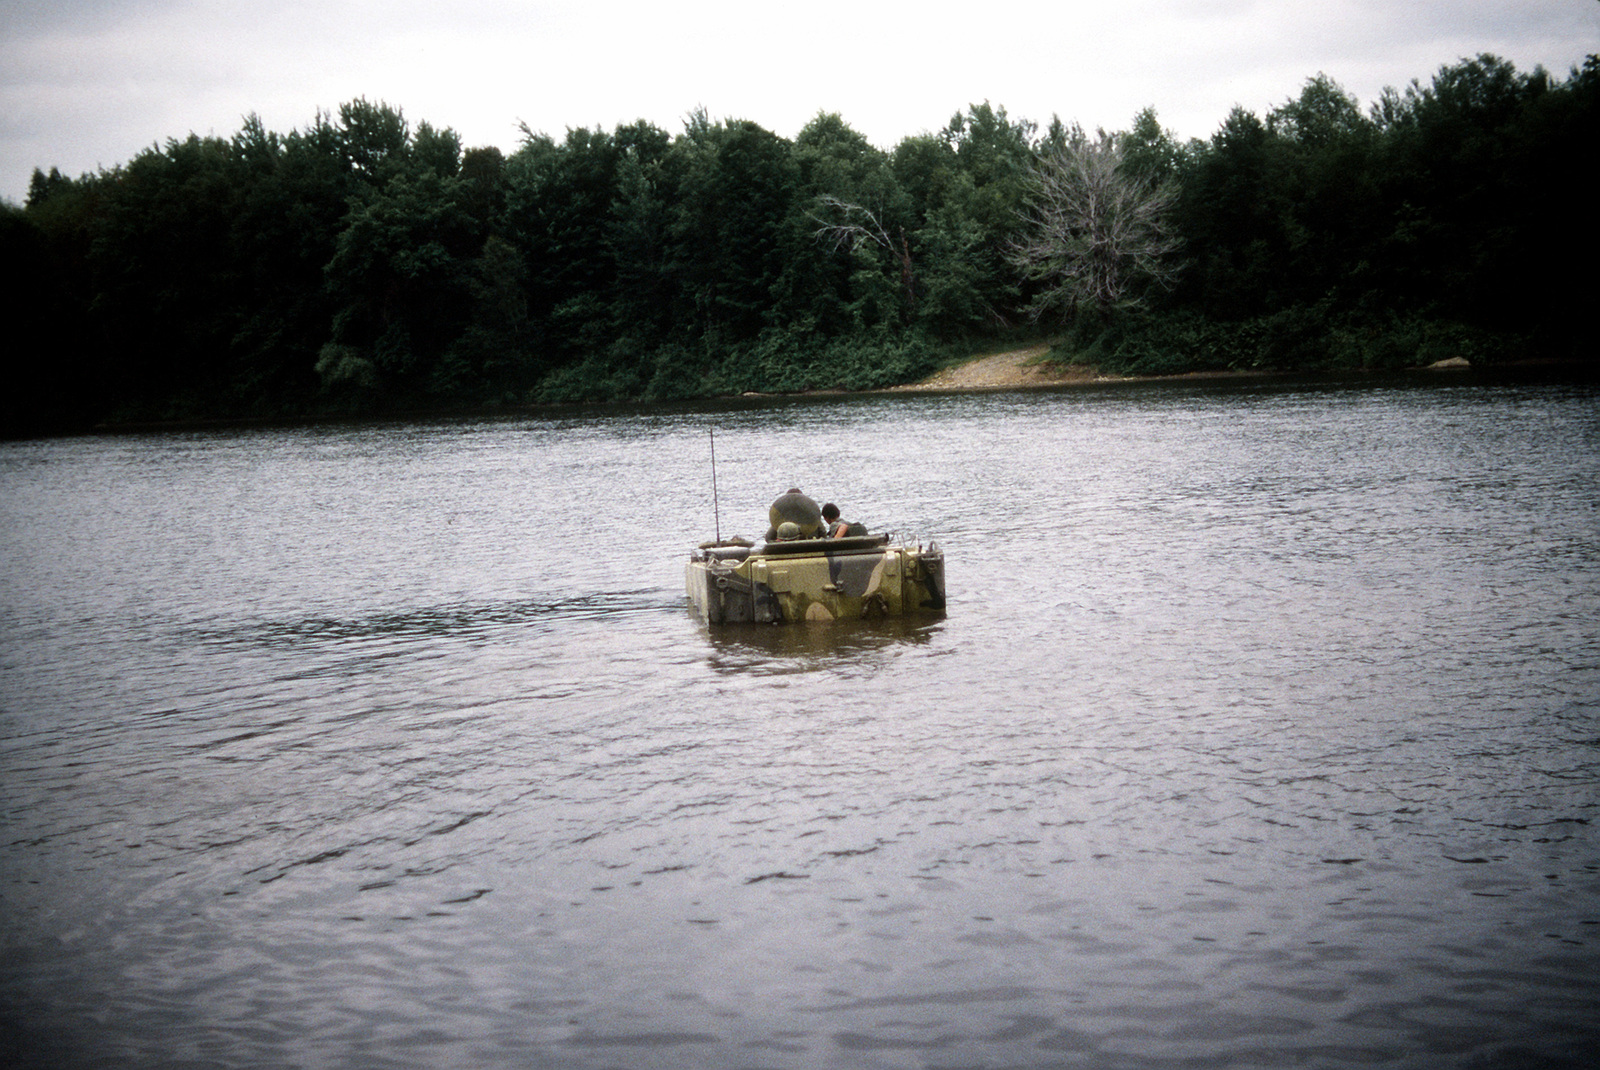 Soldiers aboard an M-113 armored personnel carrier maneuver through a lake in field practice during exercise Sentry Castle '81. The soldiers are assigned to the 42nd Infantry Division, U.S. Army